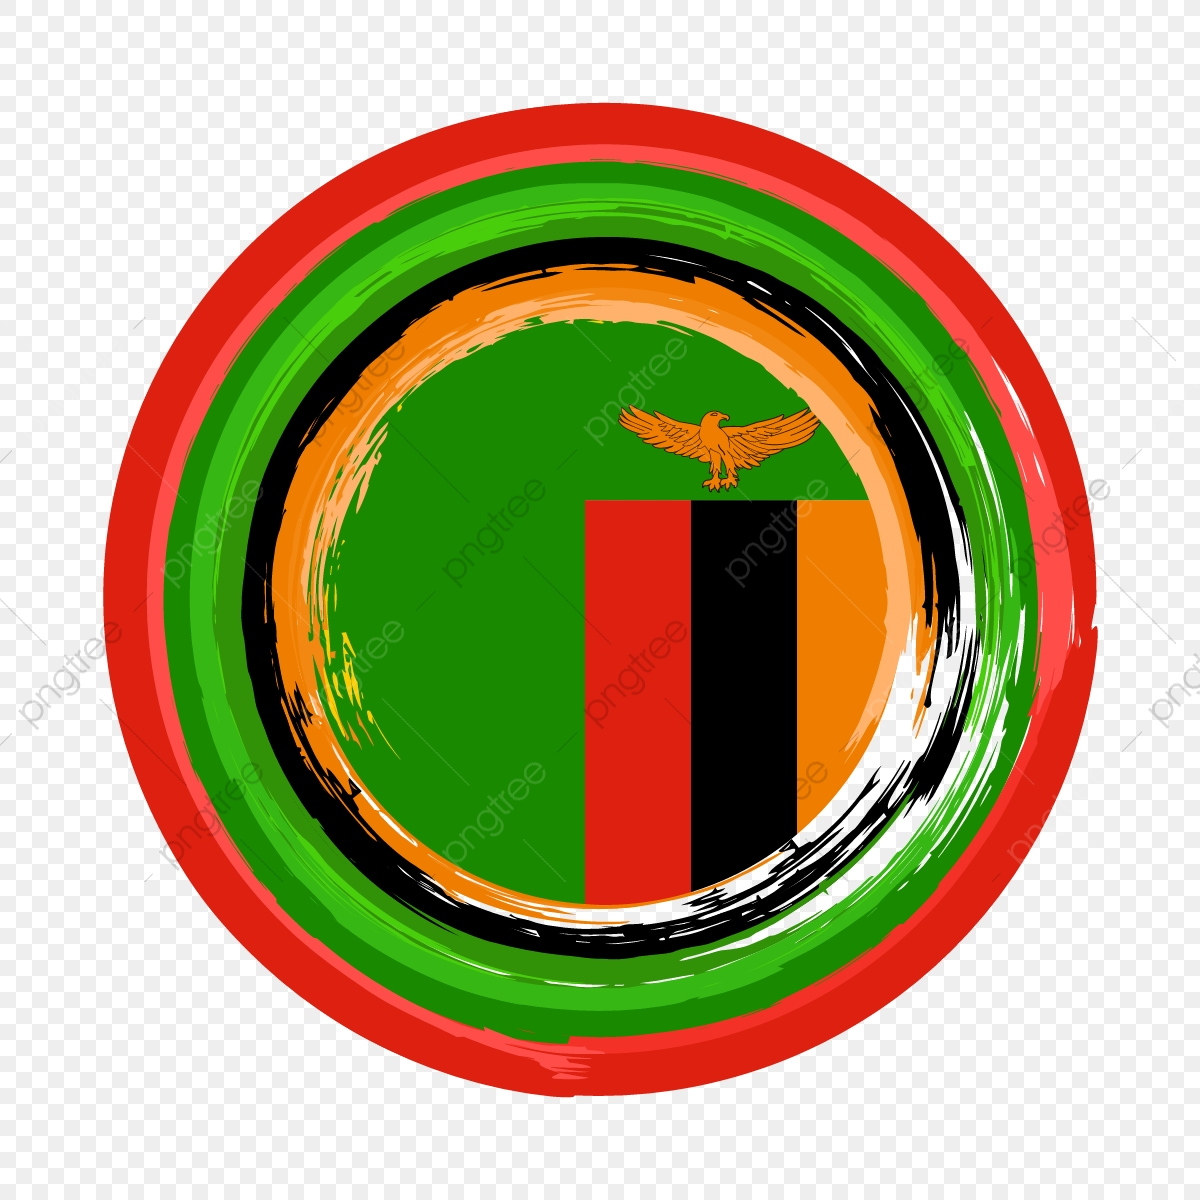 Zambia Flag Of Circle Brush Stroke Decoration, Zambia Flag